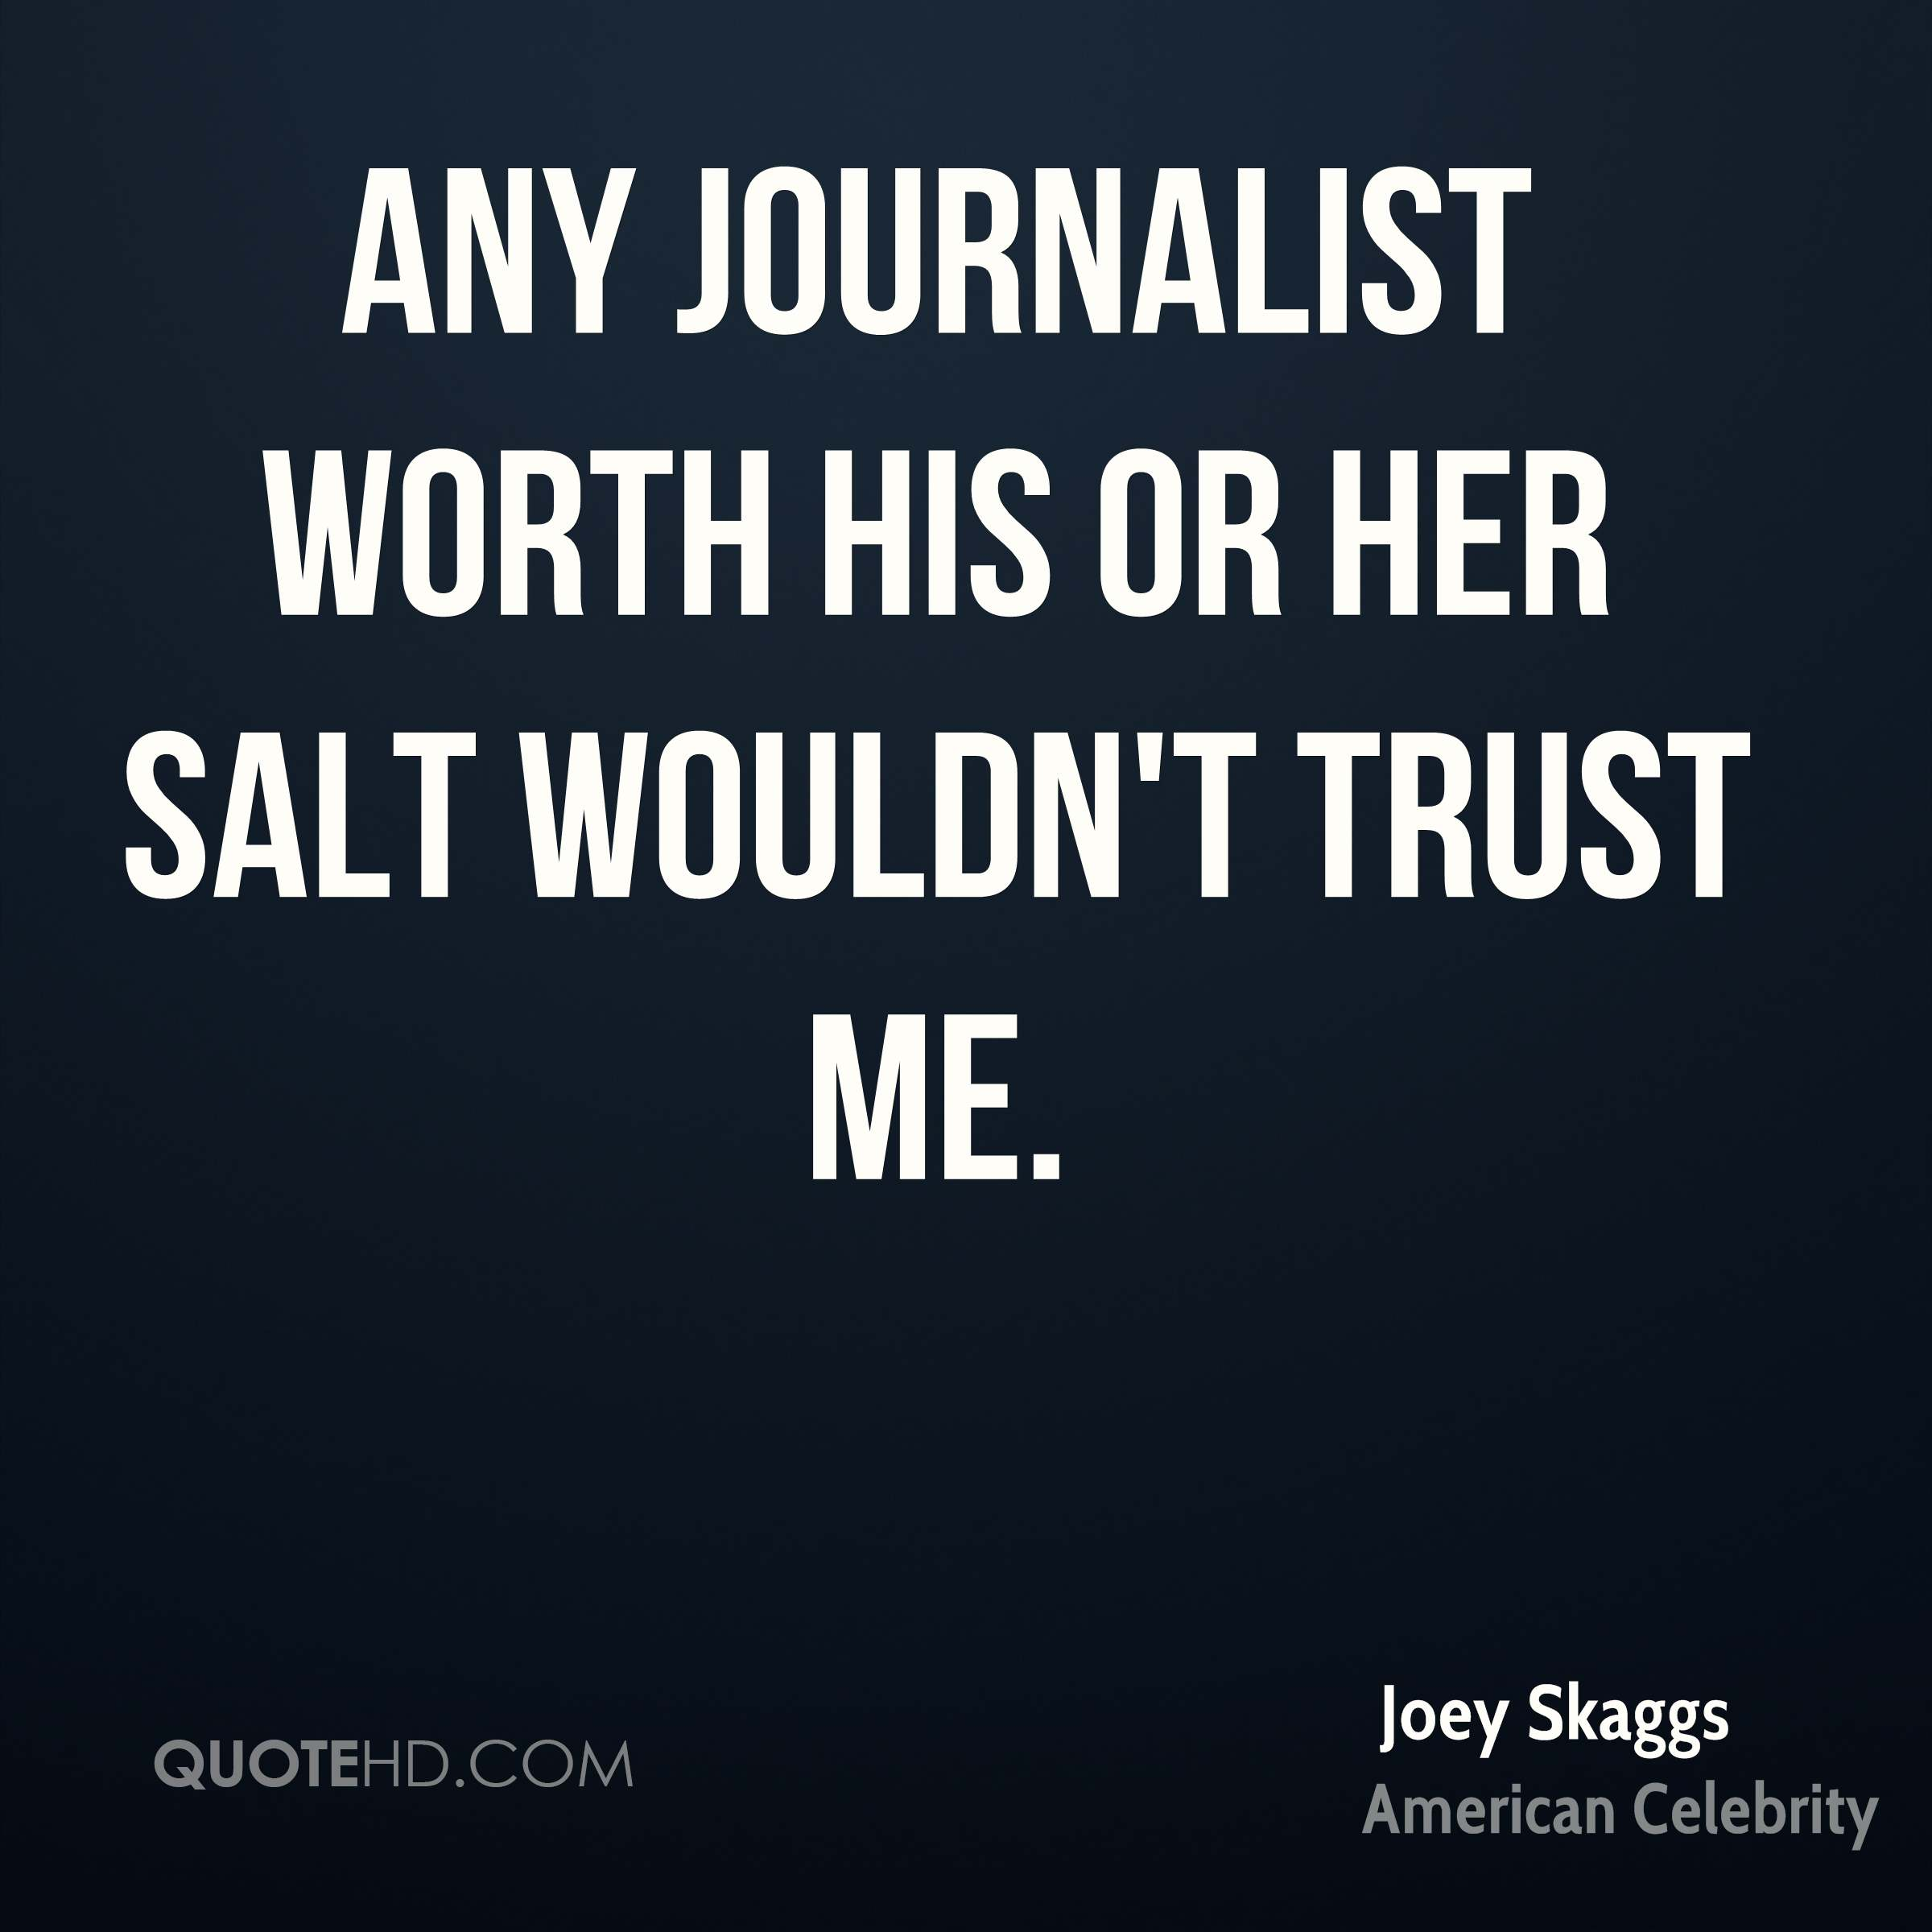 Any journalist worth his or her salt wouldn't trust me.